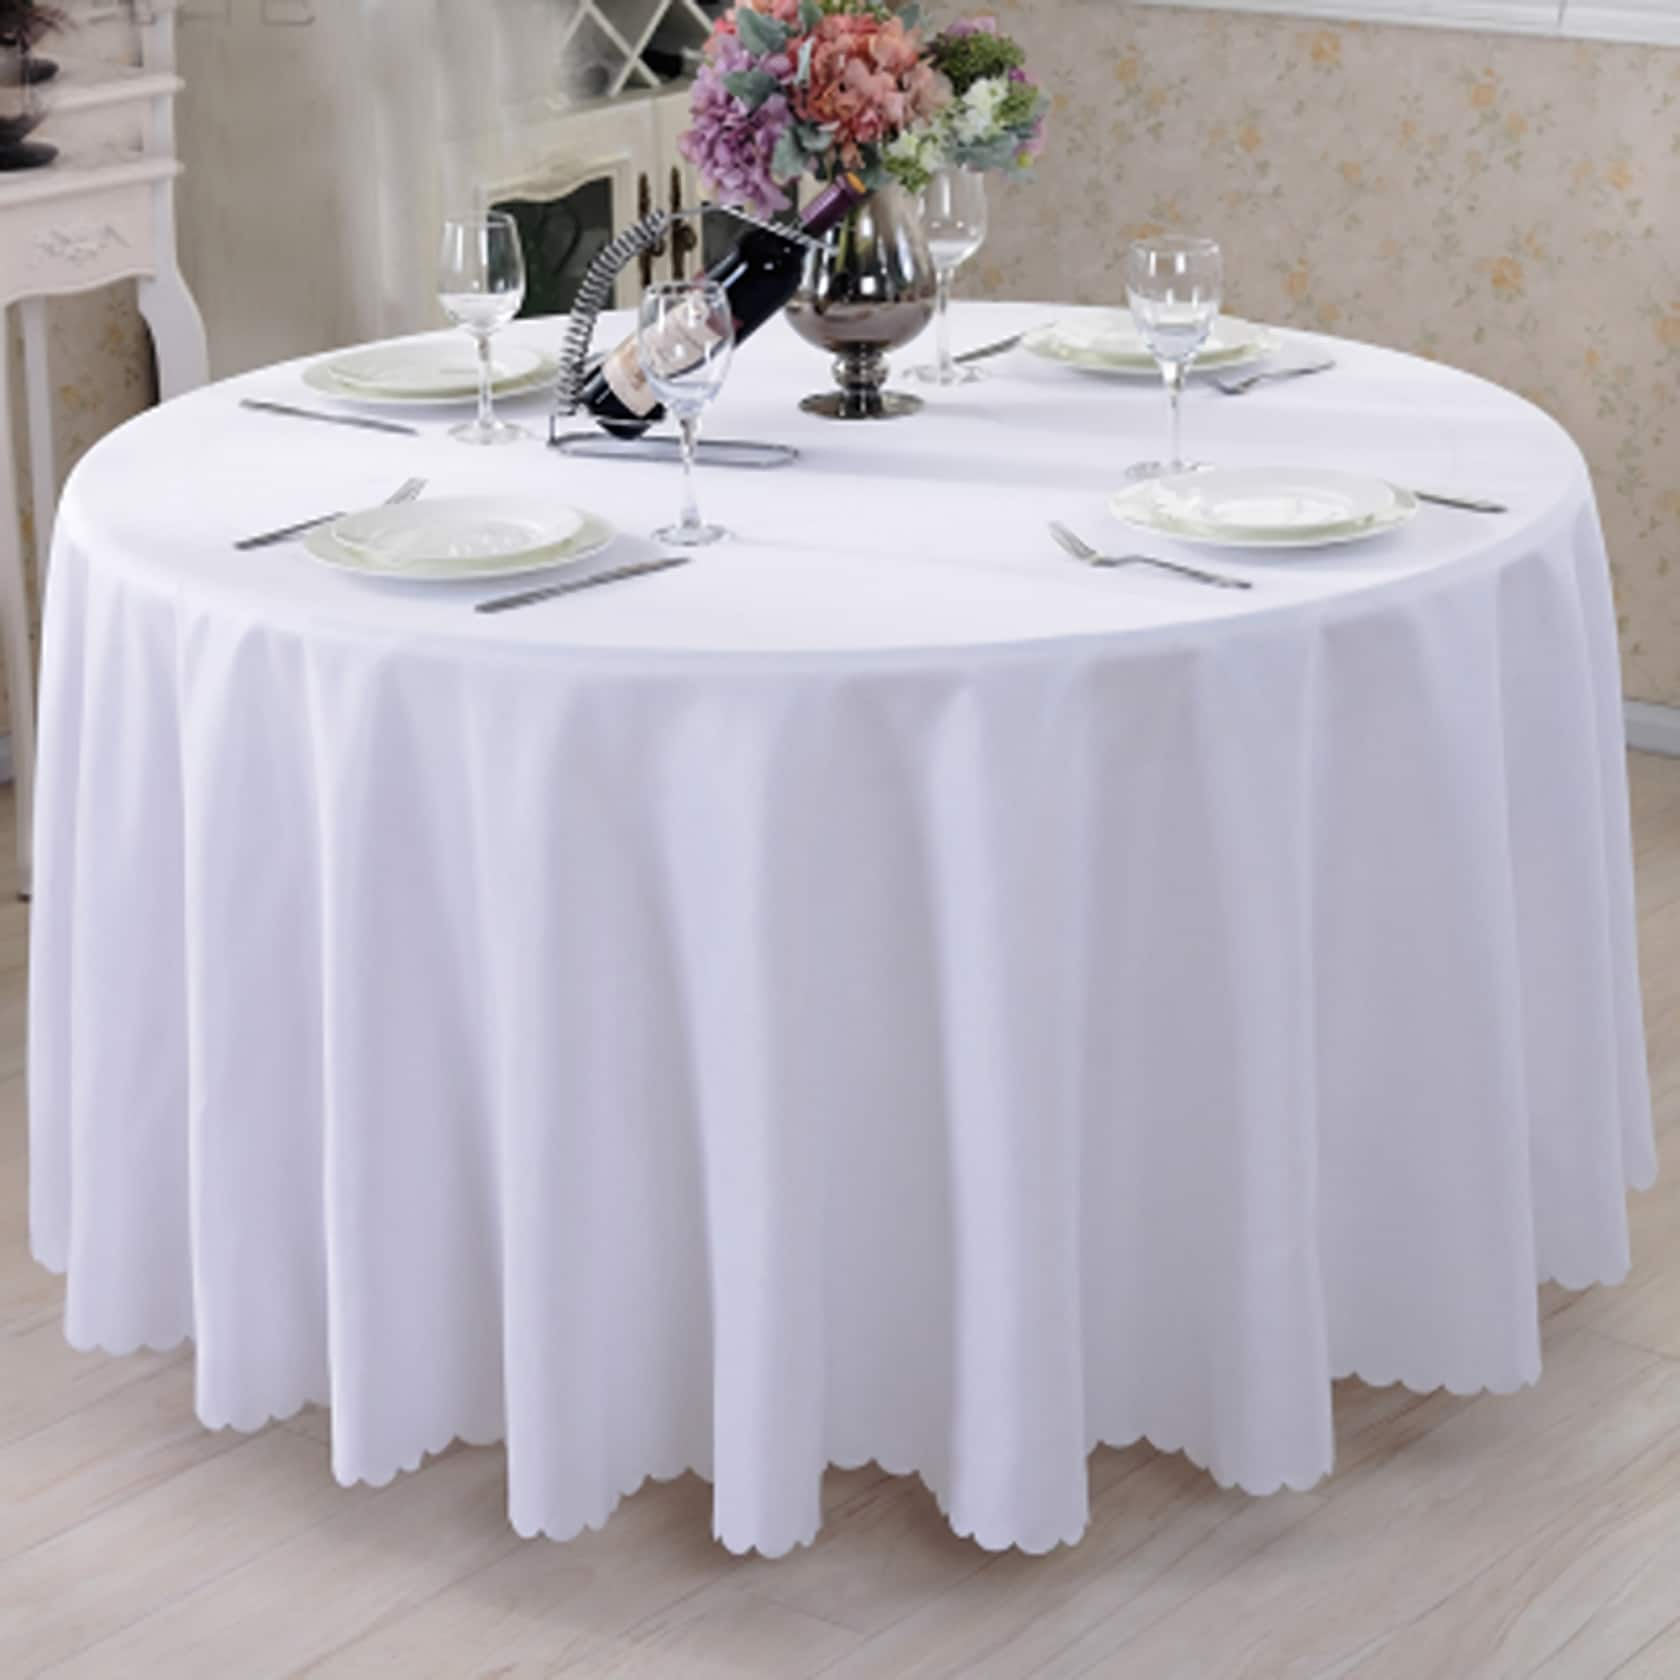 Plain tablecloths wholesale table cloths cheap table linen for Inexpensive round tables